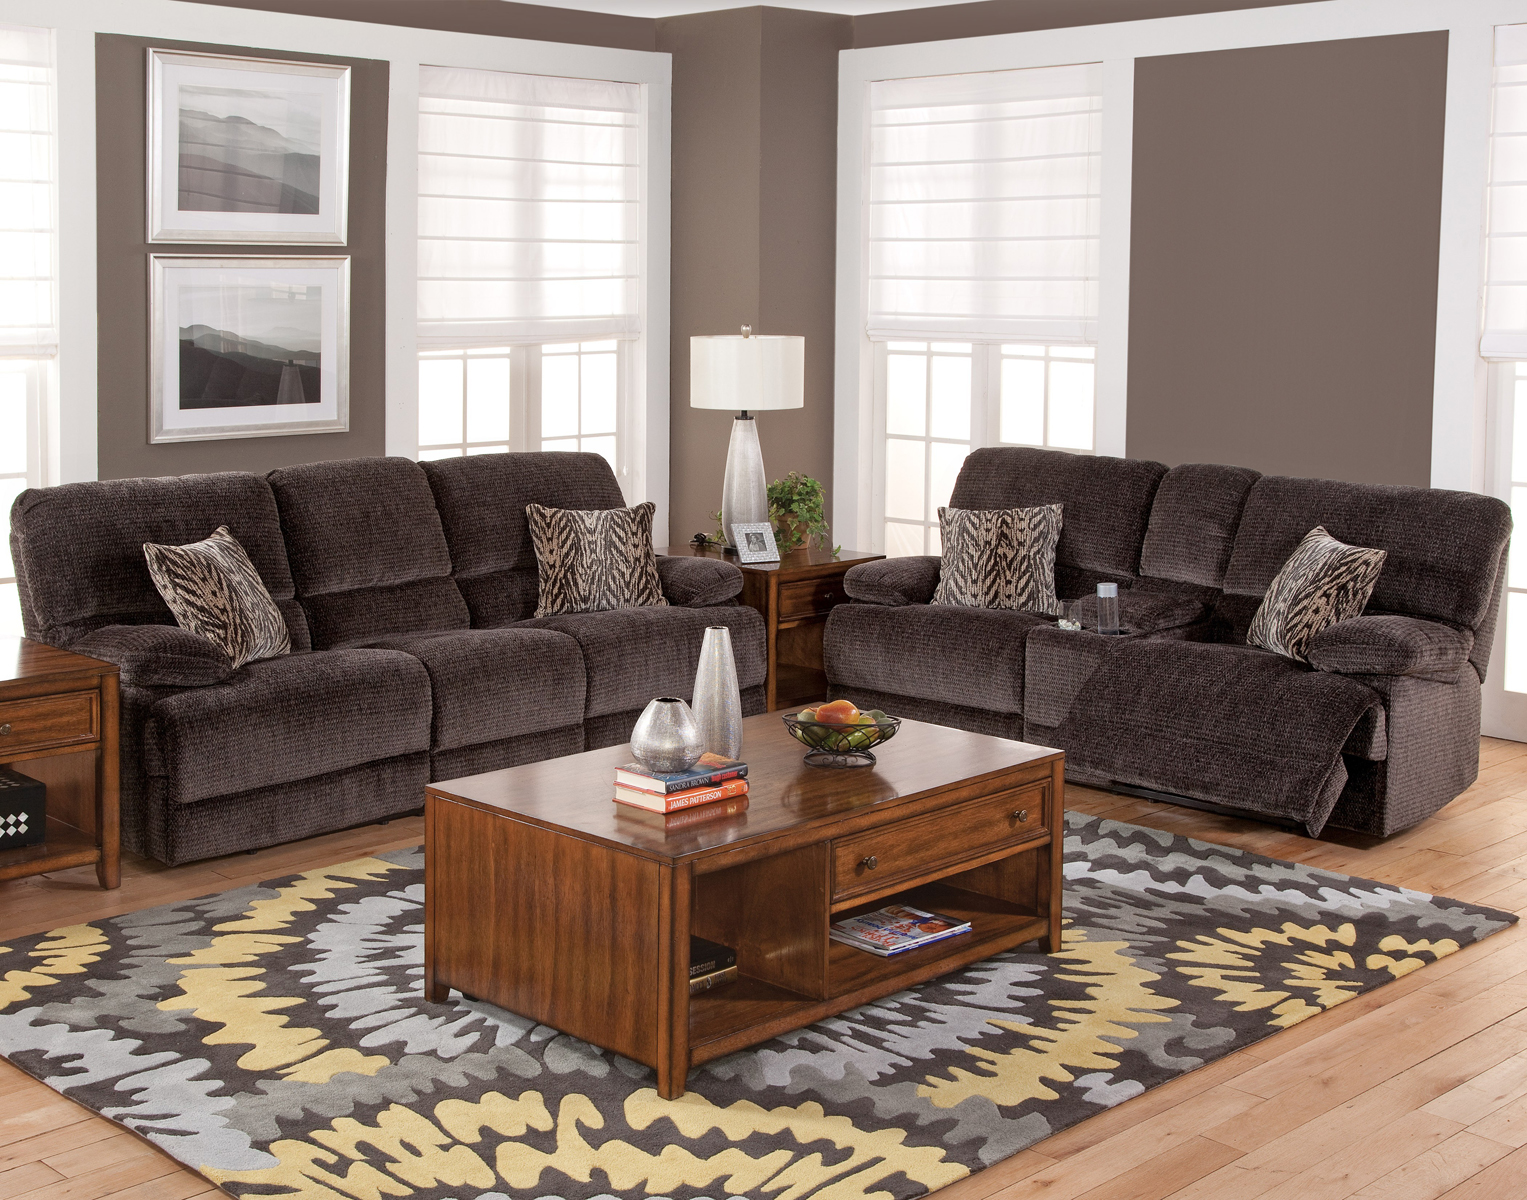 New classic furniture idaho 2 piece living room set in shadow for 3 piece living room set cheap